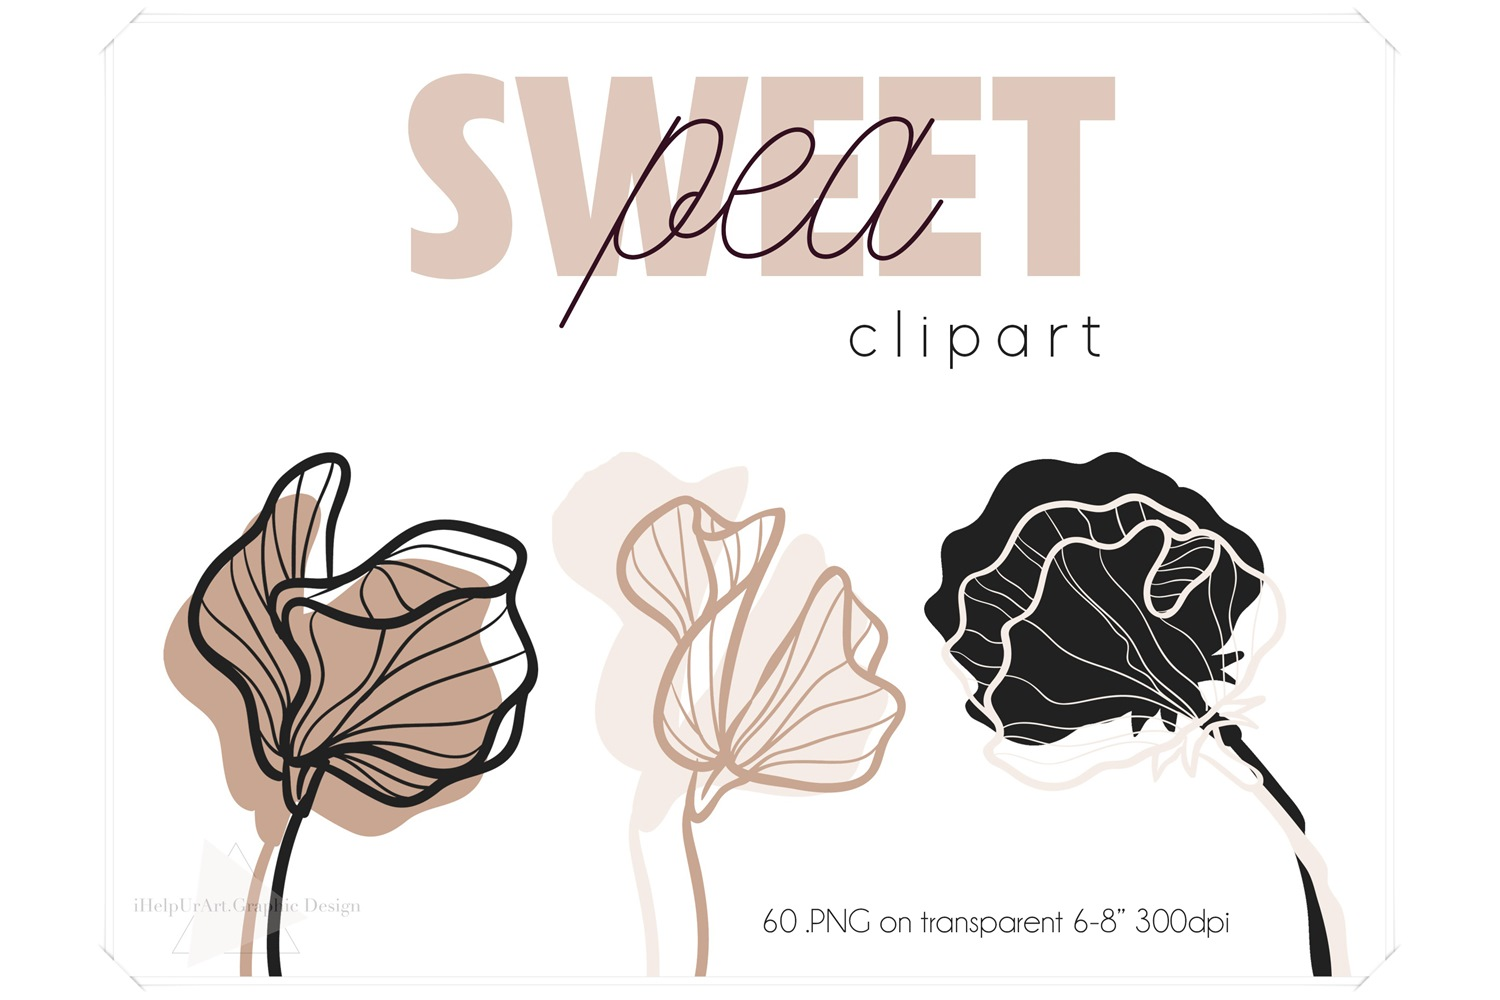 Sweet Pea Clipart - Floral Clip Art - Outline Botanical example image 1